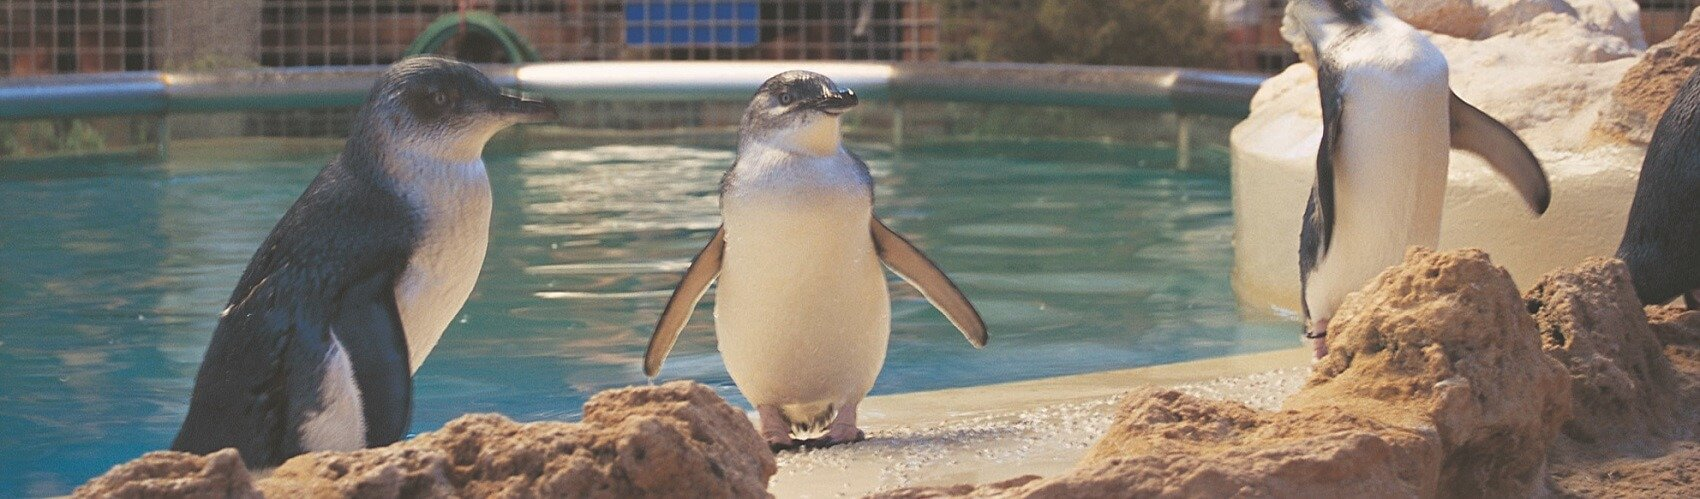 Penguin Island Tour from Perth Penguin Experience